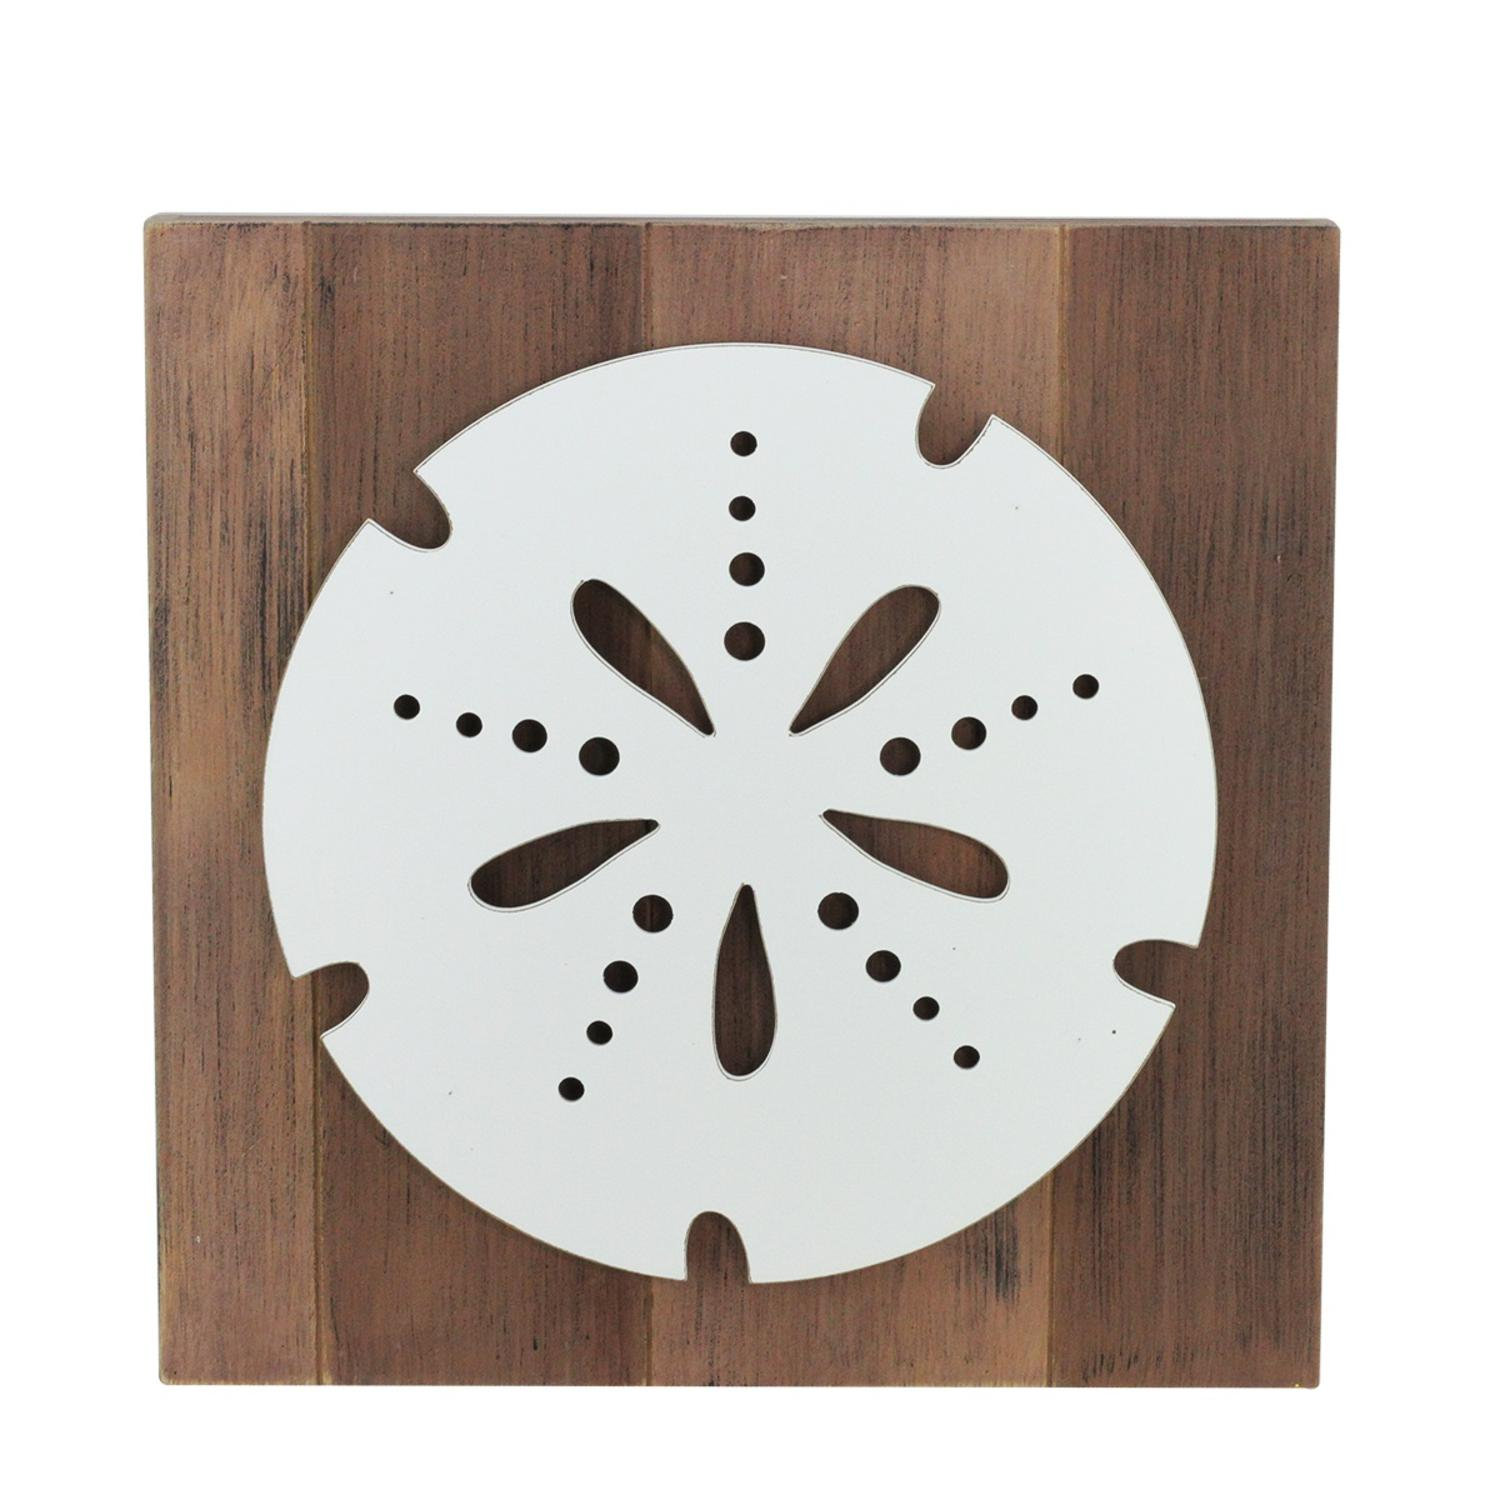 "15.75"" White Sand Dollar Rustic Brown fond décoratif mur Plaque - image 1 de 1"